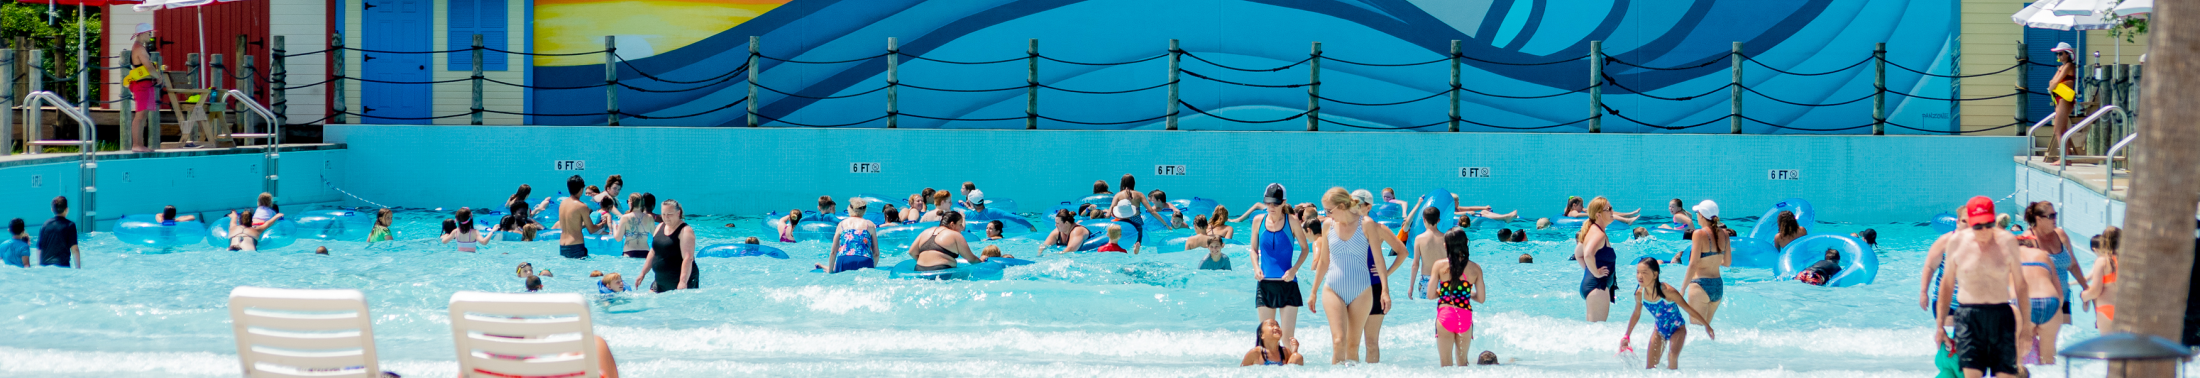 Group of people swim in the pool at Whirlin Waters Adventure Waterpark